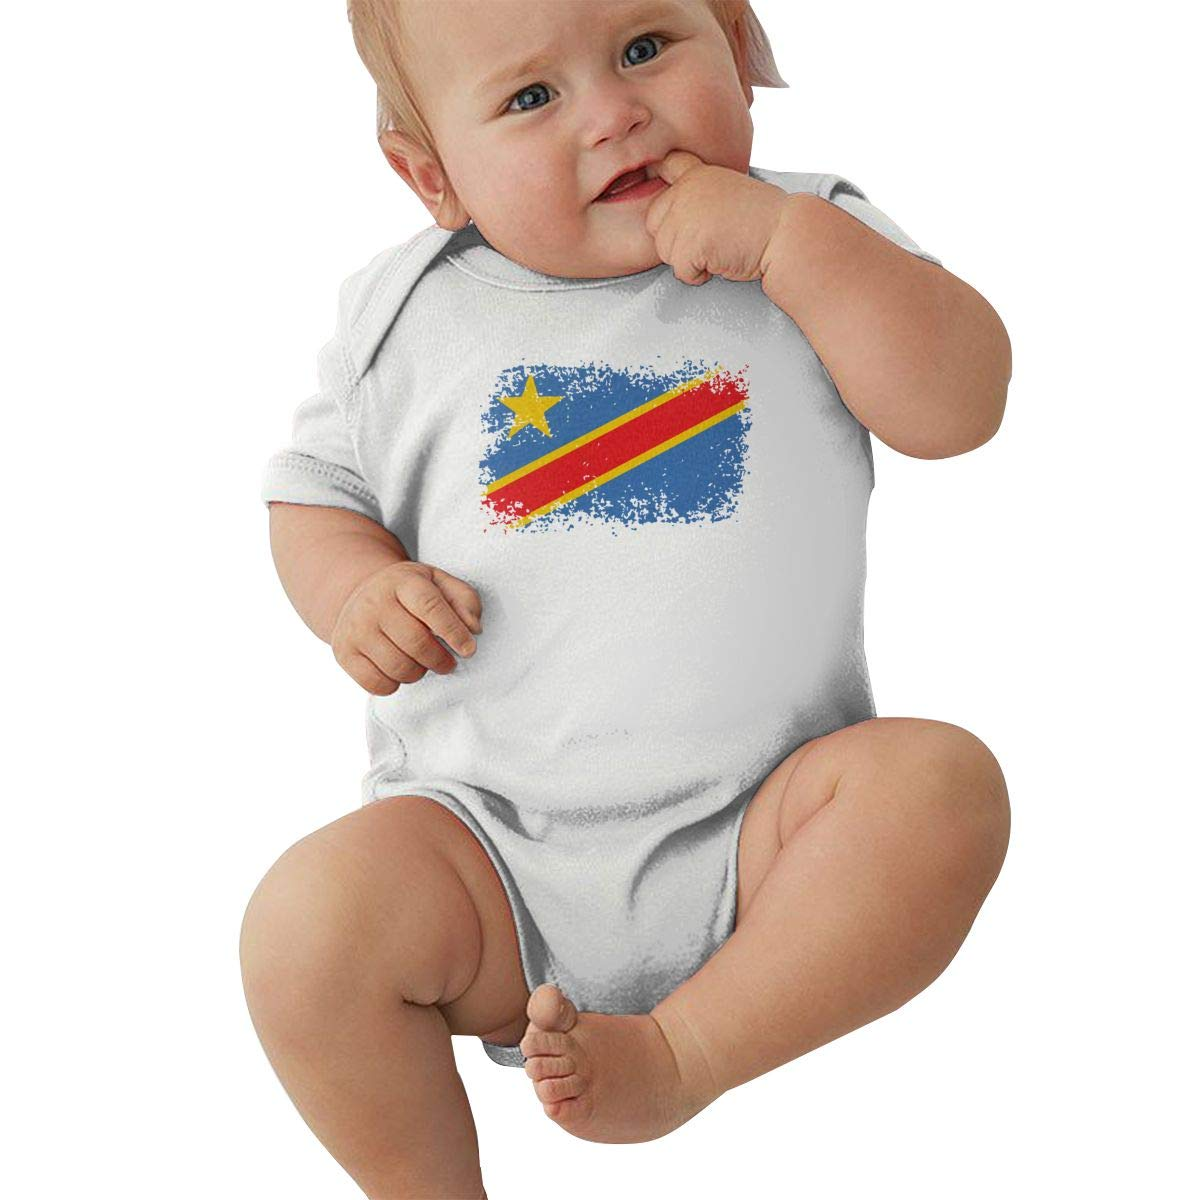 LBJQ9 Congo Distressed Flag Baby Boys Soft /& Breathable Short Sleeve Bodysuit Outfits Clothes